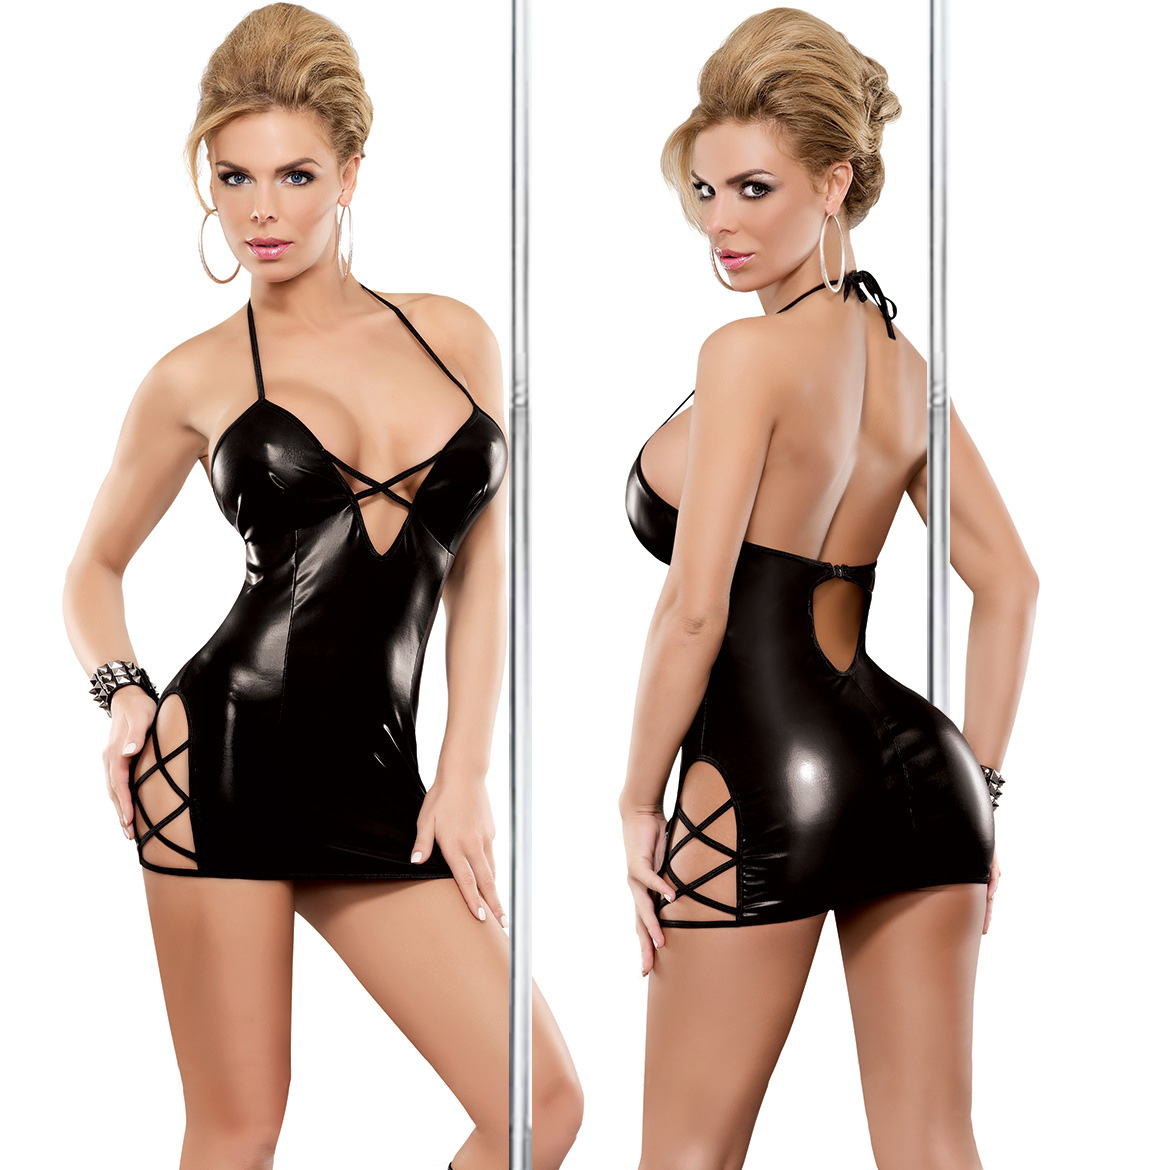 <font><b>Black</b></font> <font><b>Sexy</b></font> Lingerie Plus Size Women Erotic <font><b>Dress</b></font> Faux <font><b>Leather</b></font> Erotic seduction Apparel Sex Bondage Costumes Underwear clubwear image